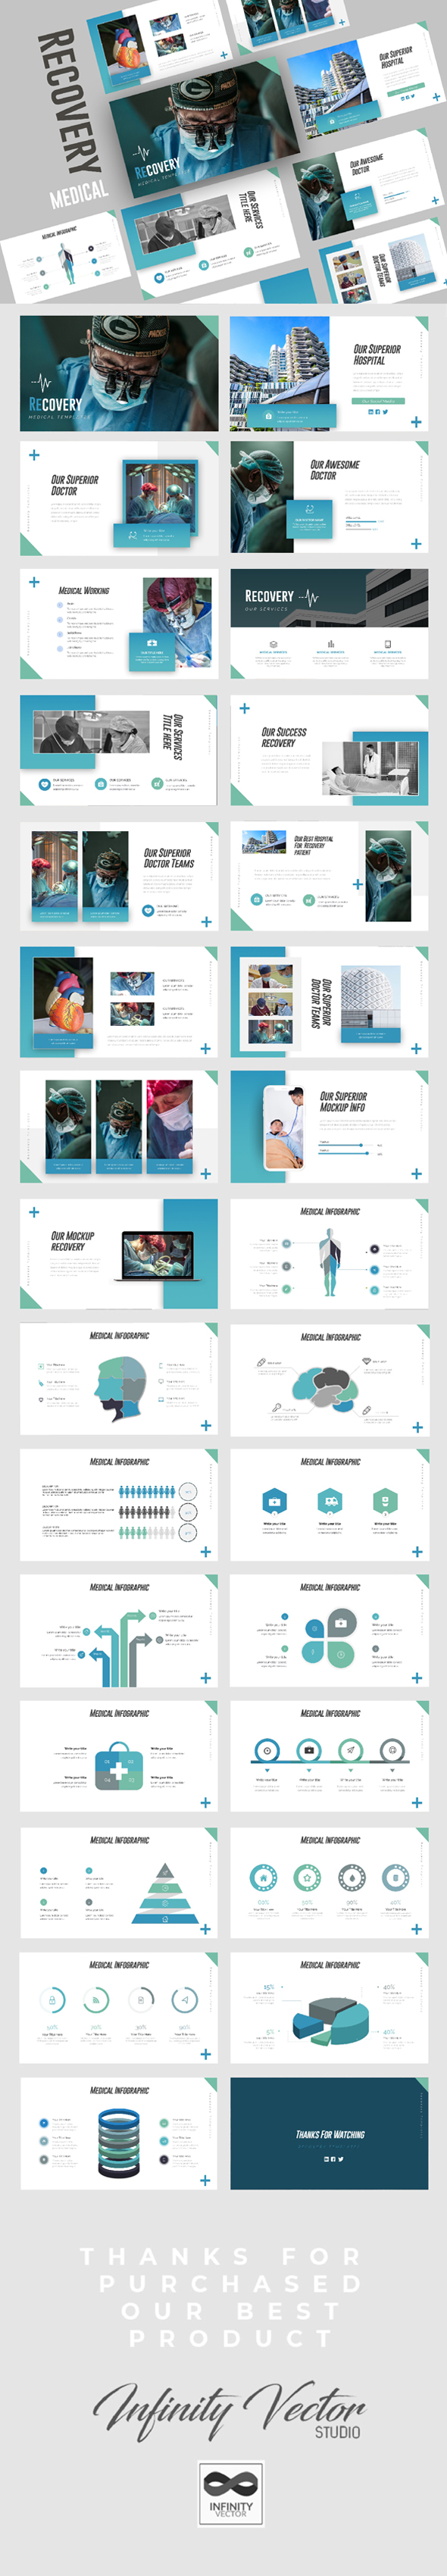 Recovery Medical Google Slides